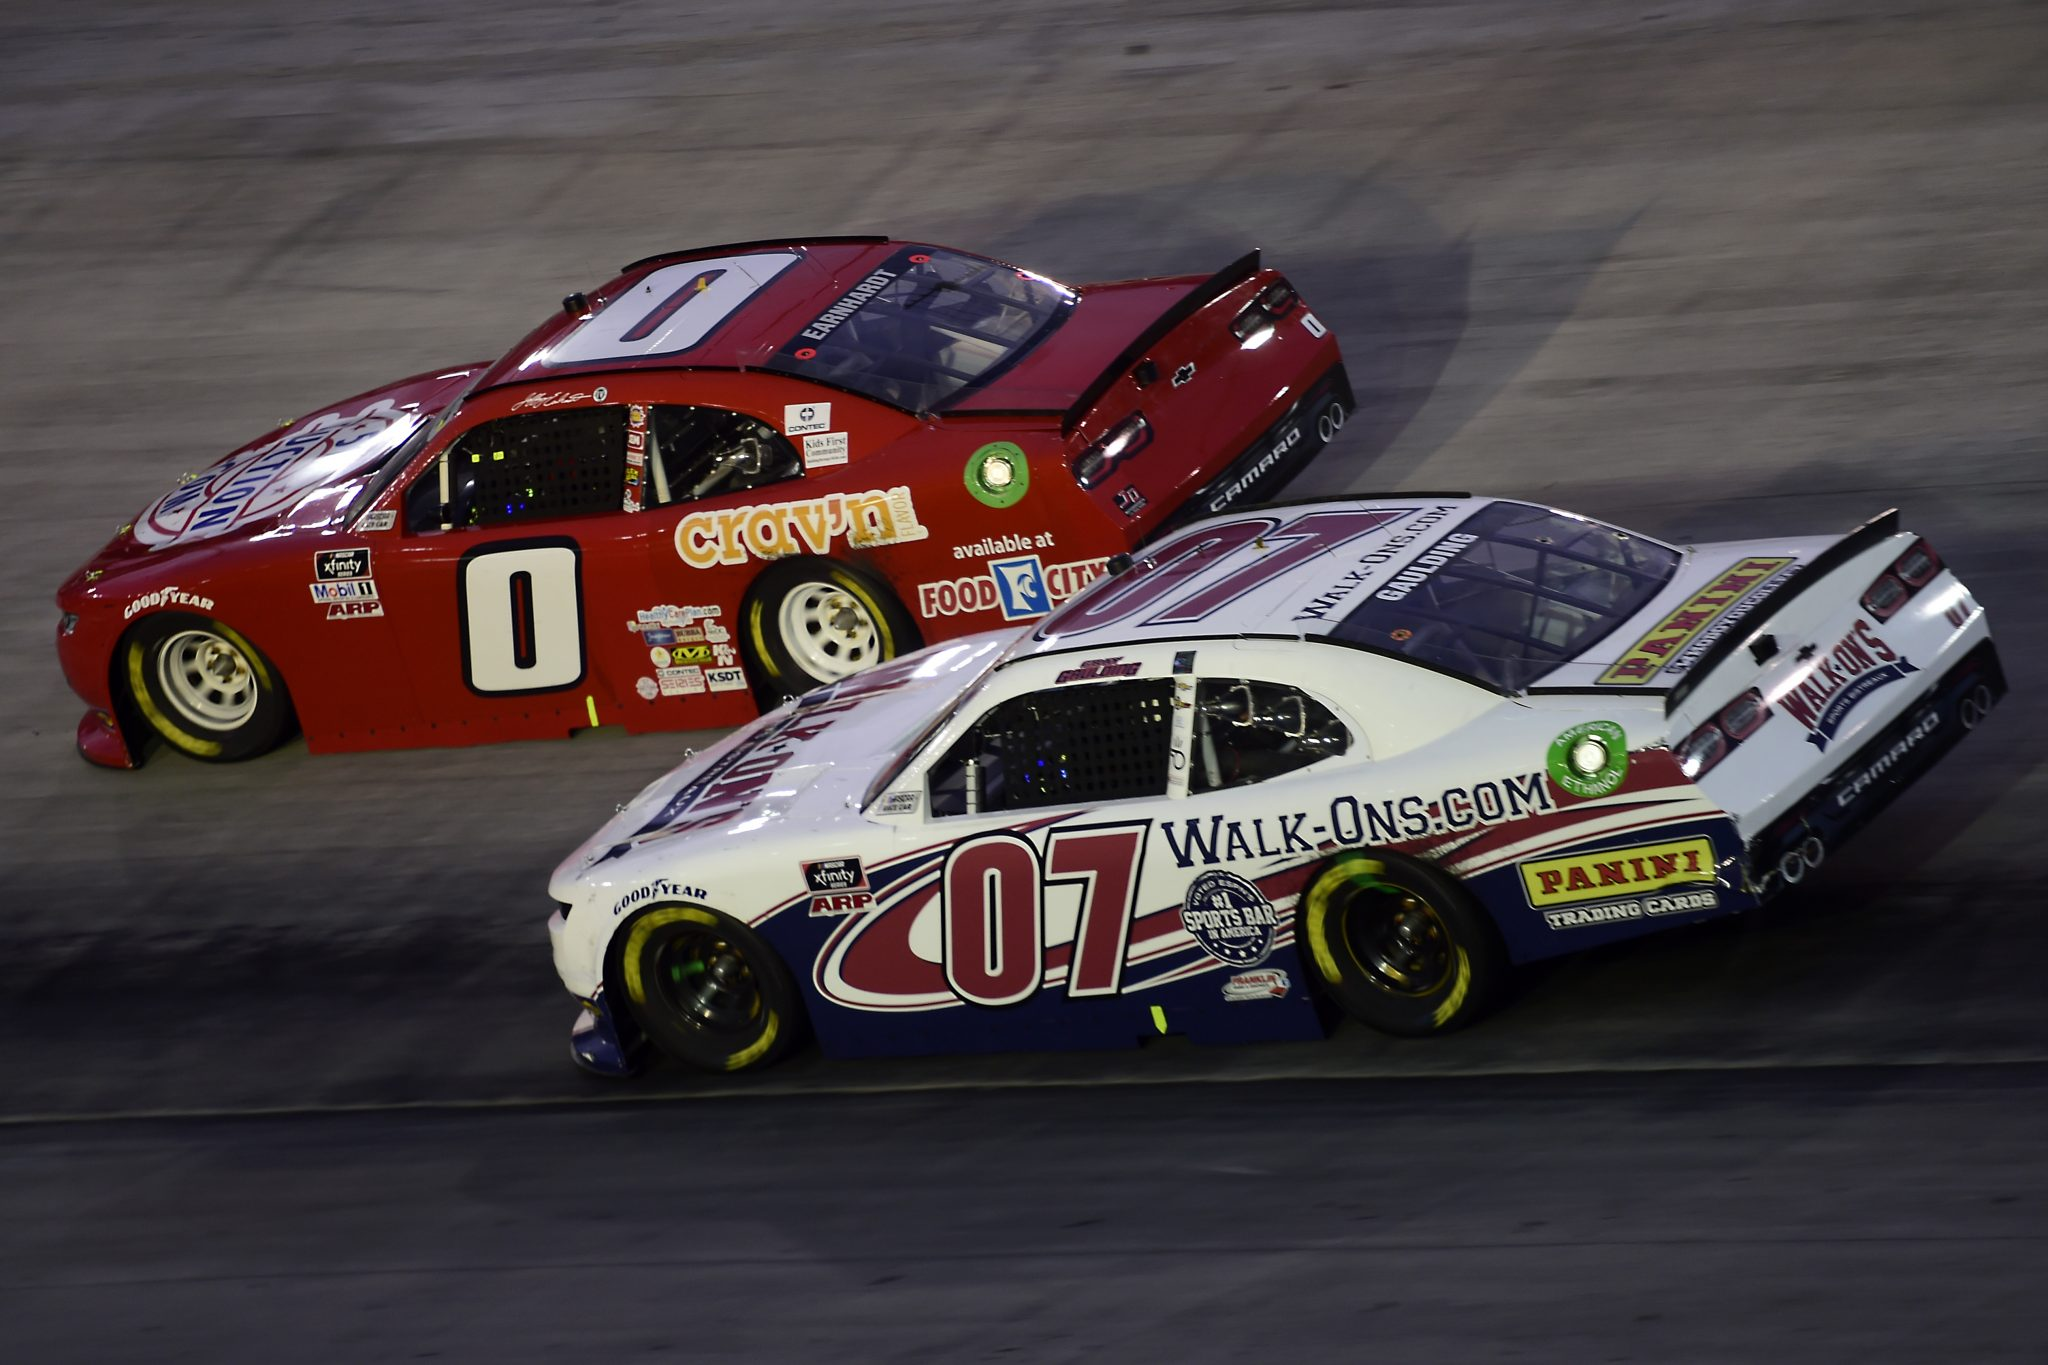 BRISTOL, TENNESSEE - SEPTEMBER 18: Gray Gaulding, driver of the #07 WALK-ON'S Chevrolet, and Jeffrey Earnhardt, driver of the #0 511Auction.com Chevrolet, race during the NASCAR Xfinity Series Food City 300 at Bristol Motor Speedway on September 18, 2020 in Bristol, Tennessee. (Photo by Jared C. Tilton/Getty Images) | Getty Images